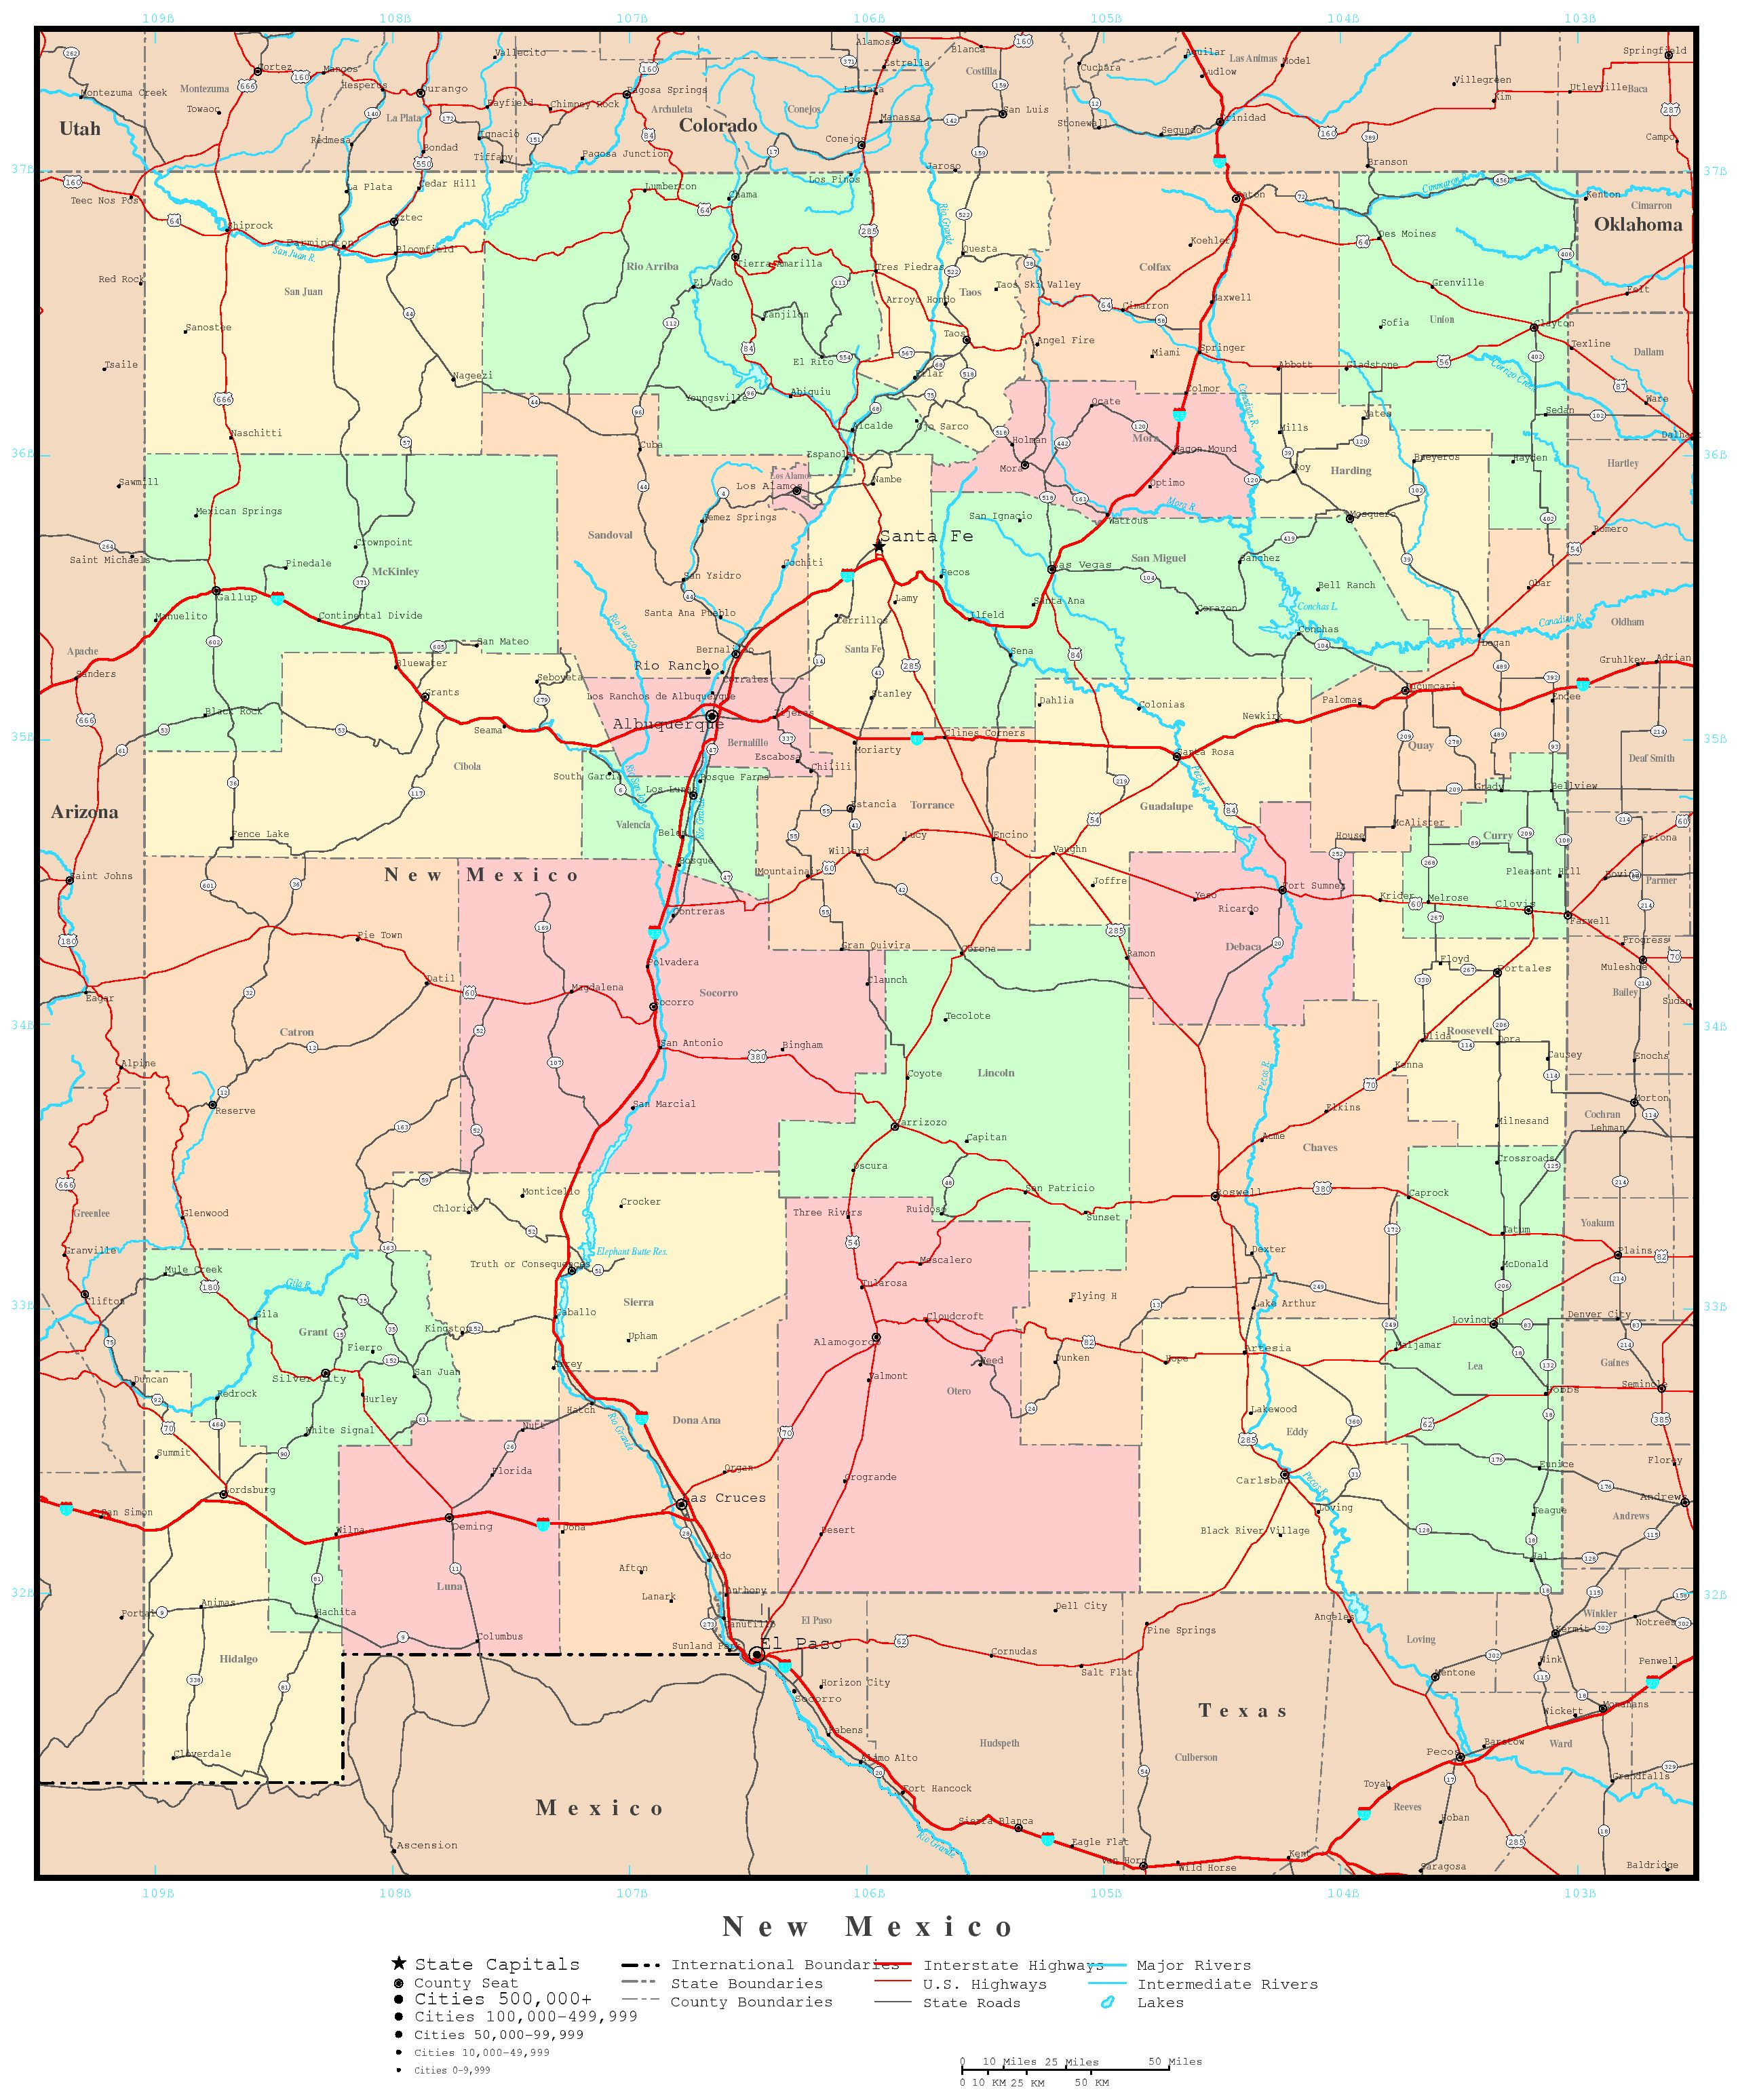 New Mexico Political Map - Maps of new mexico